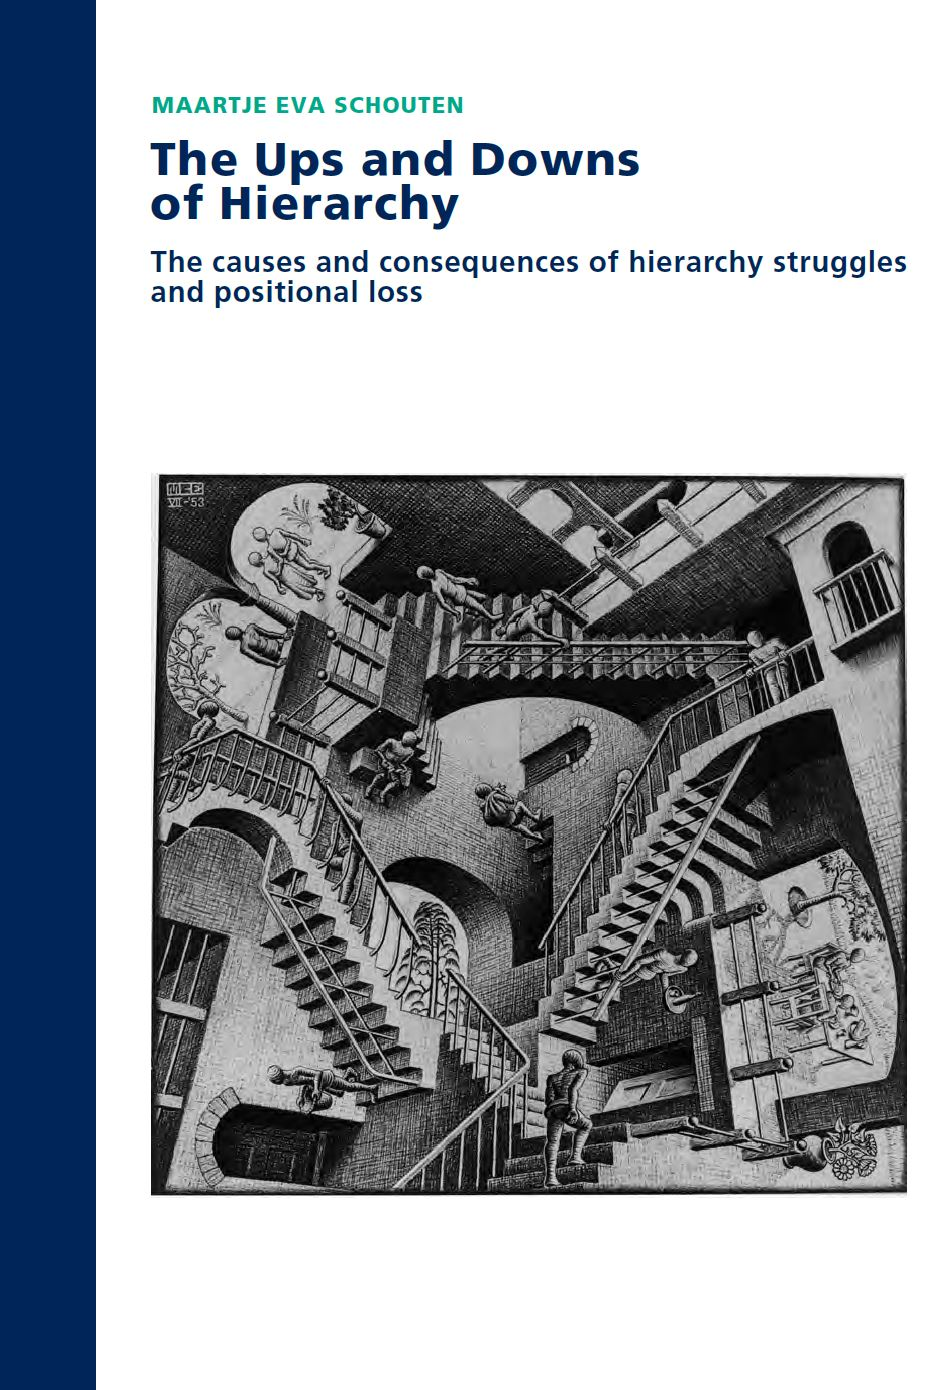 The Ups and Downs of Hierarchy: The causes and consequences of hierarchy struggles and positional loss